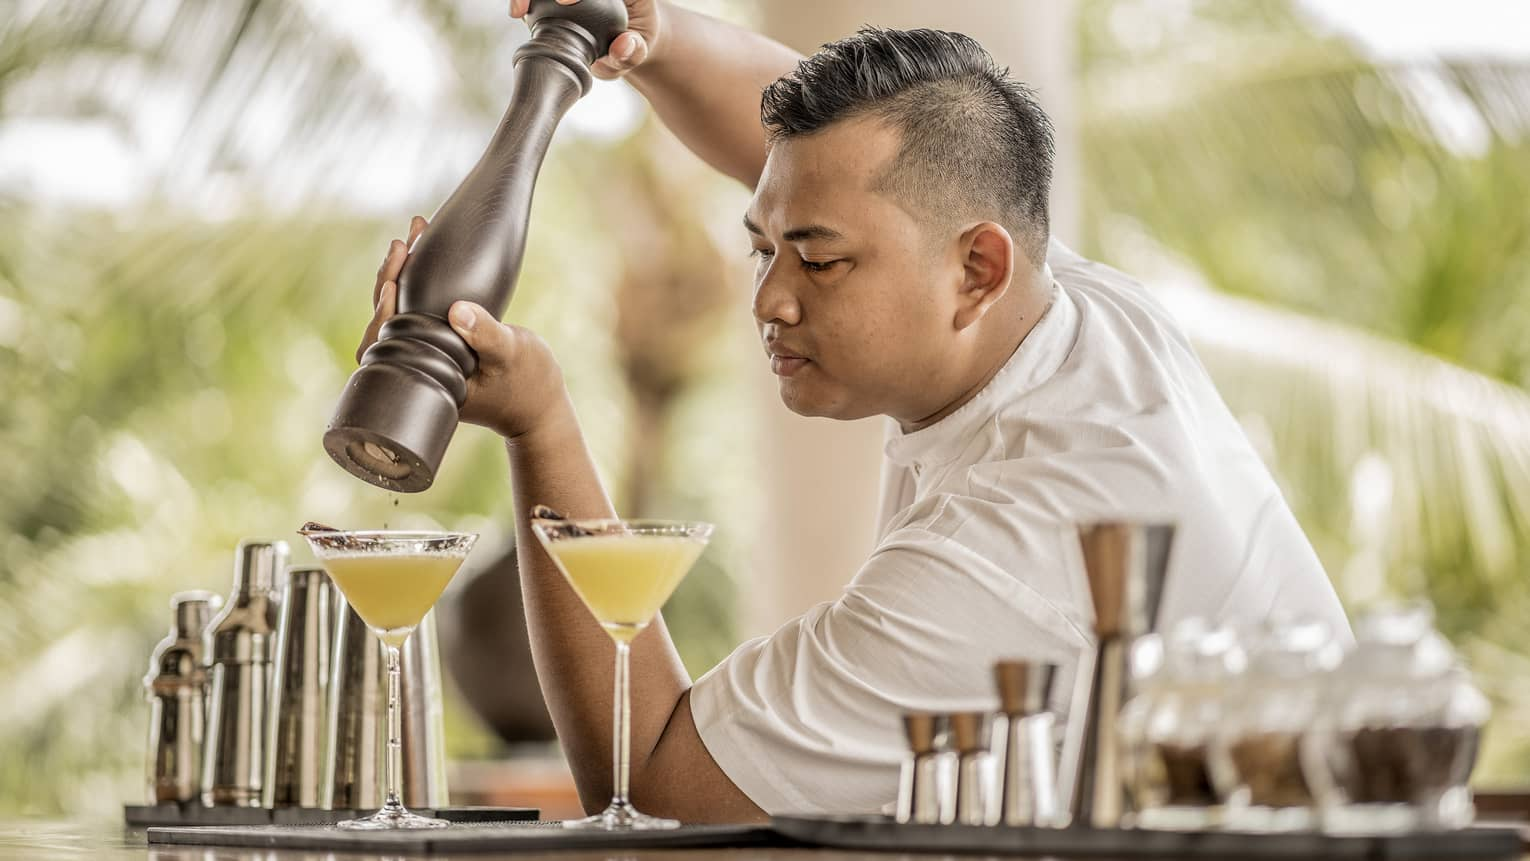 A bartender garnishing a drink with spices in Bali